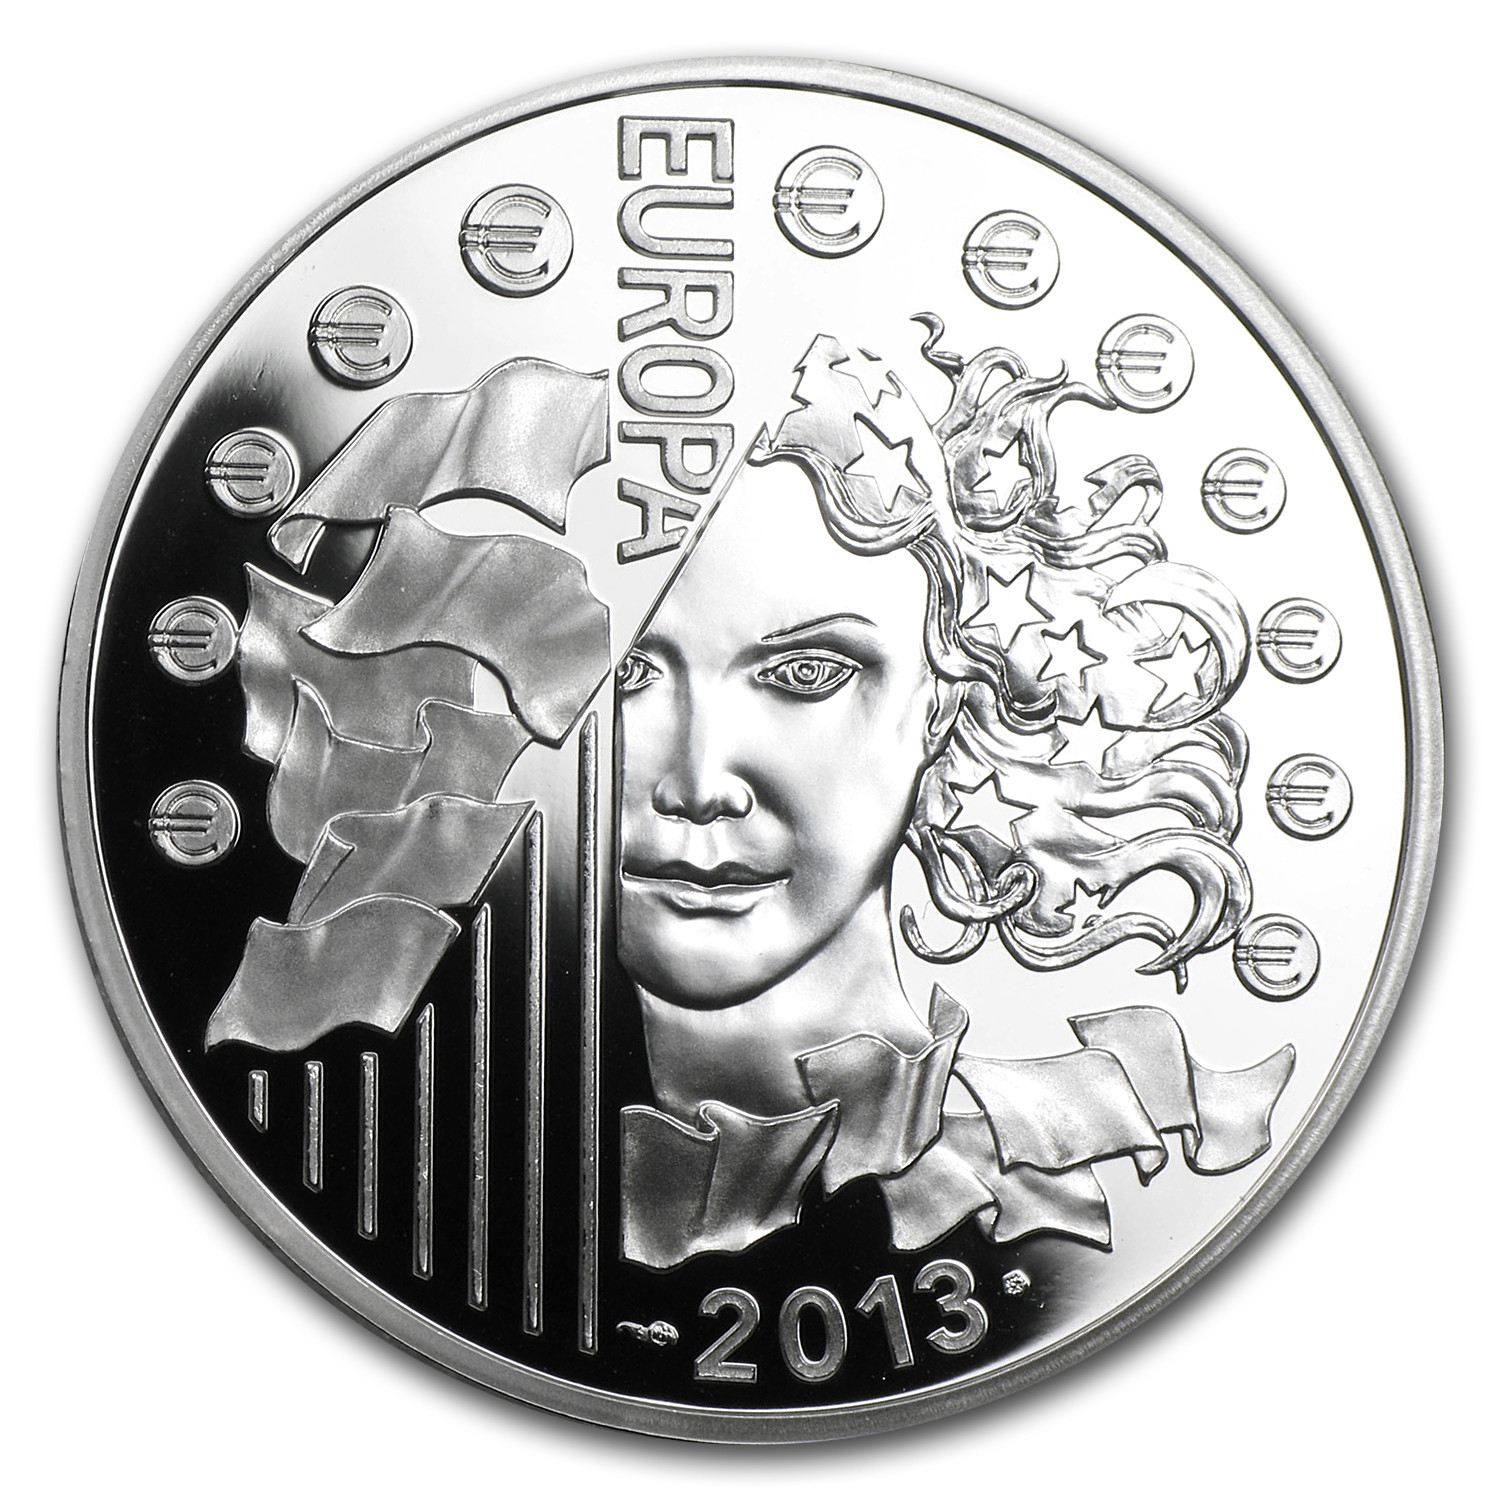 2013 Silver €10 Europa Series Proof (50th Anniv of Élysée Treaty)